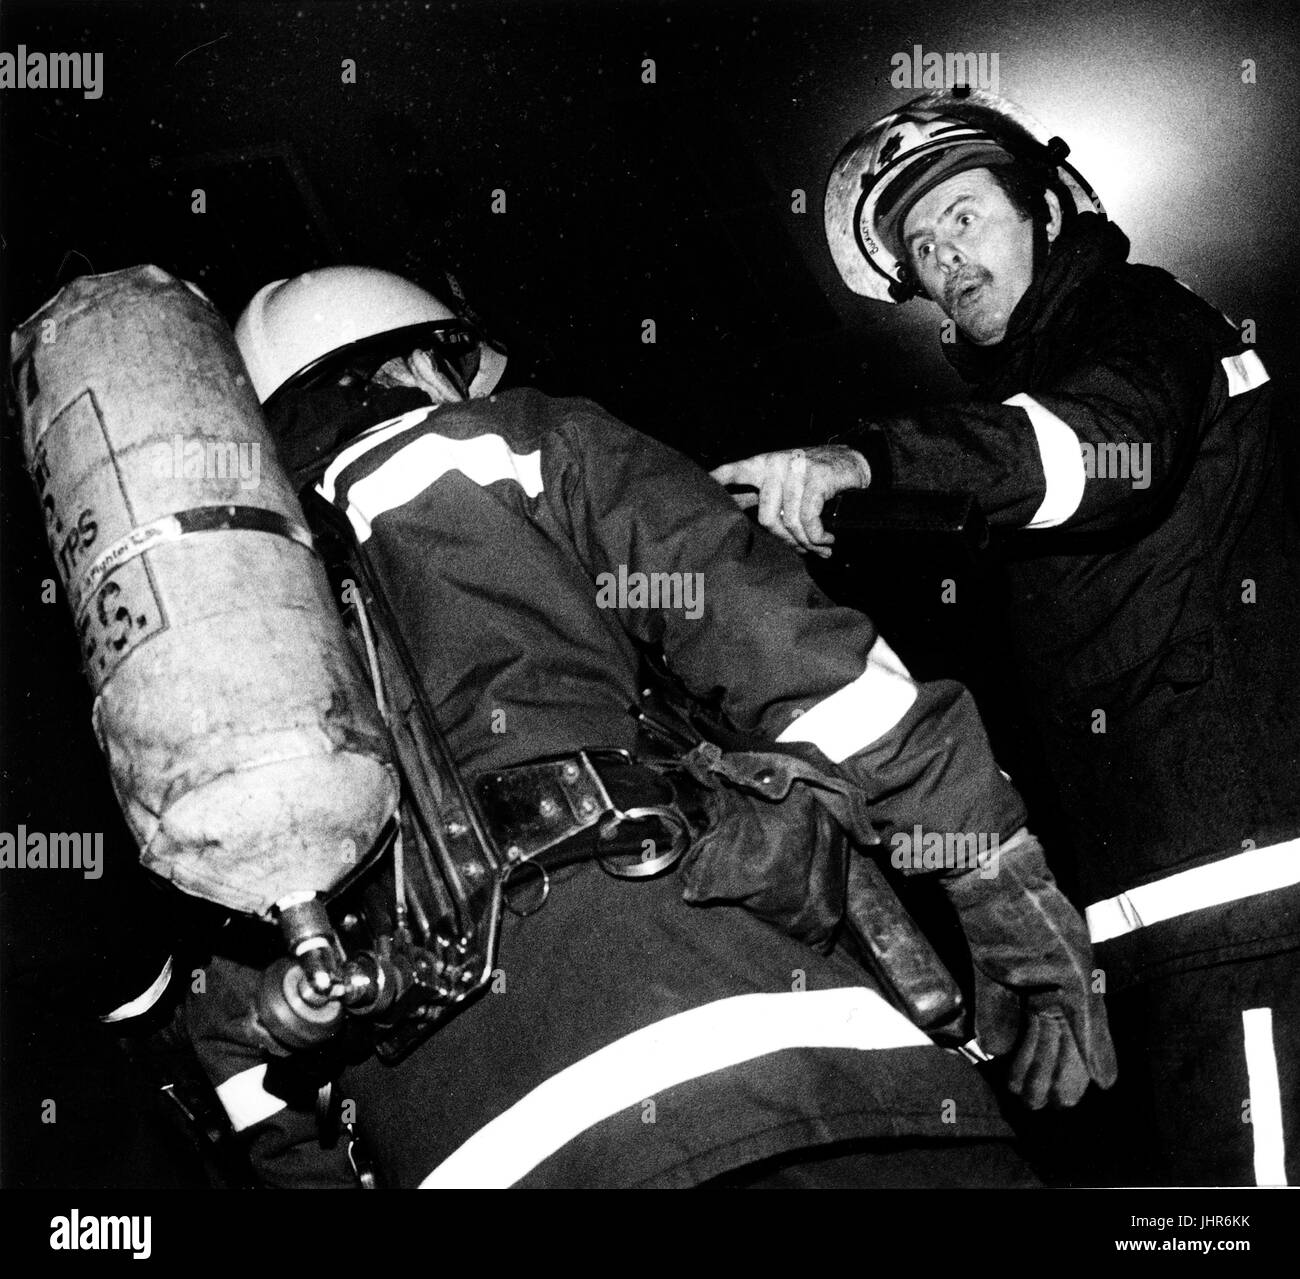 Station officer from West Midlands Fire Brigade gives orders to fire fighter about to enter burning building in - Stock Image